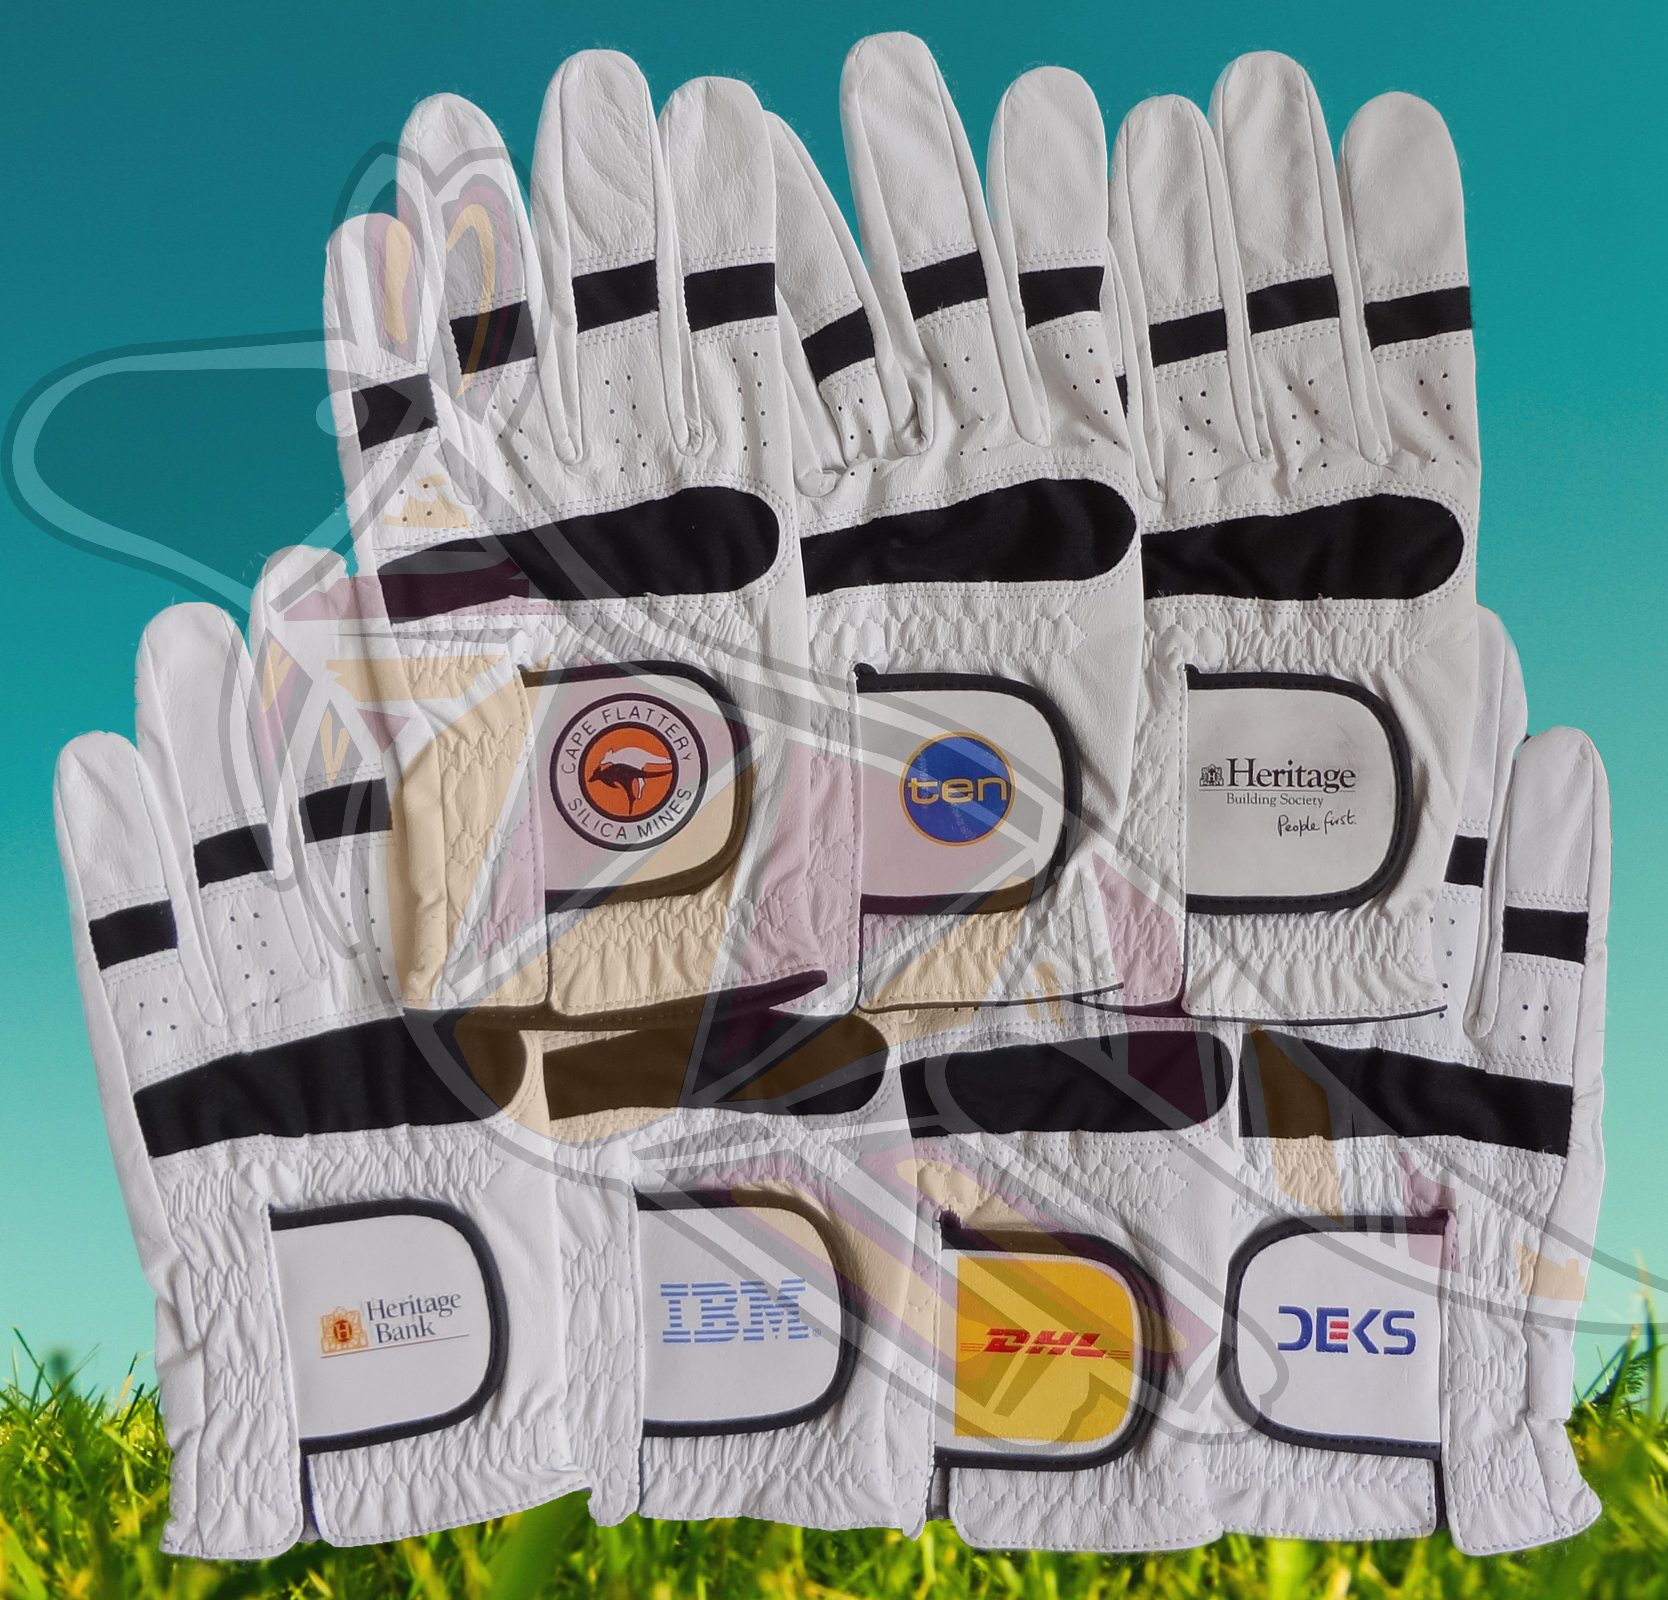 corporate-gloves-001-grass-sky-background-watermarked-copy.jpg